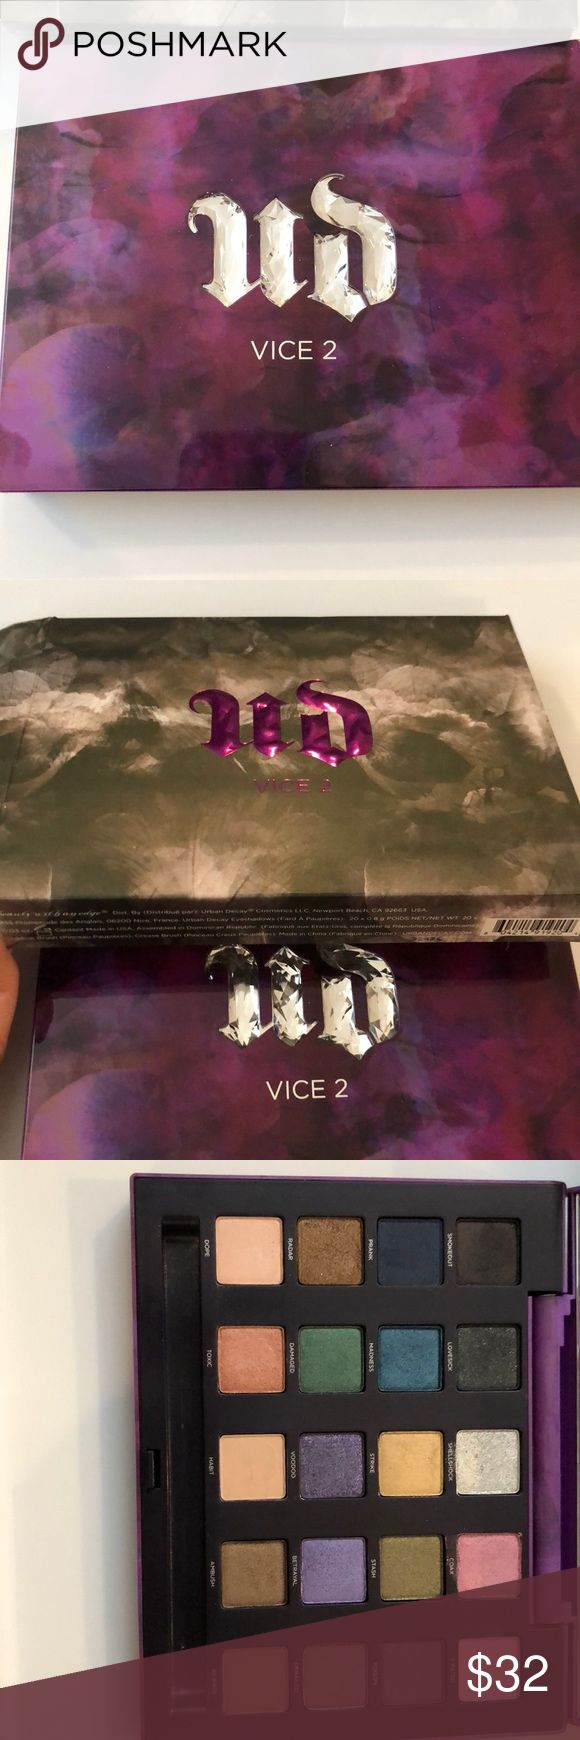 Urban Decay Vice 2 Only used once, lost the brush that comes with it. Purchased directly from Sephora, comes with original box. Urban Decay Makeup Eyeshadow